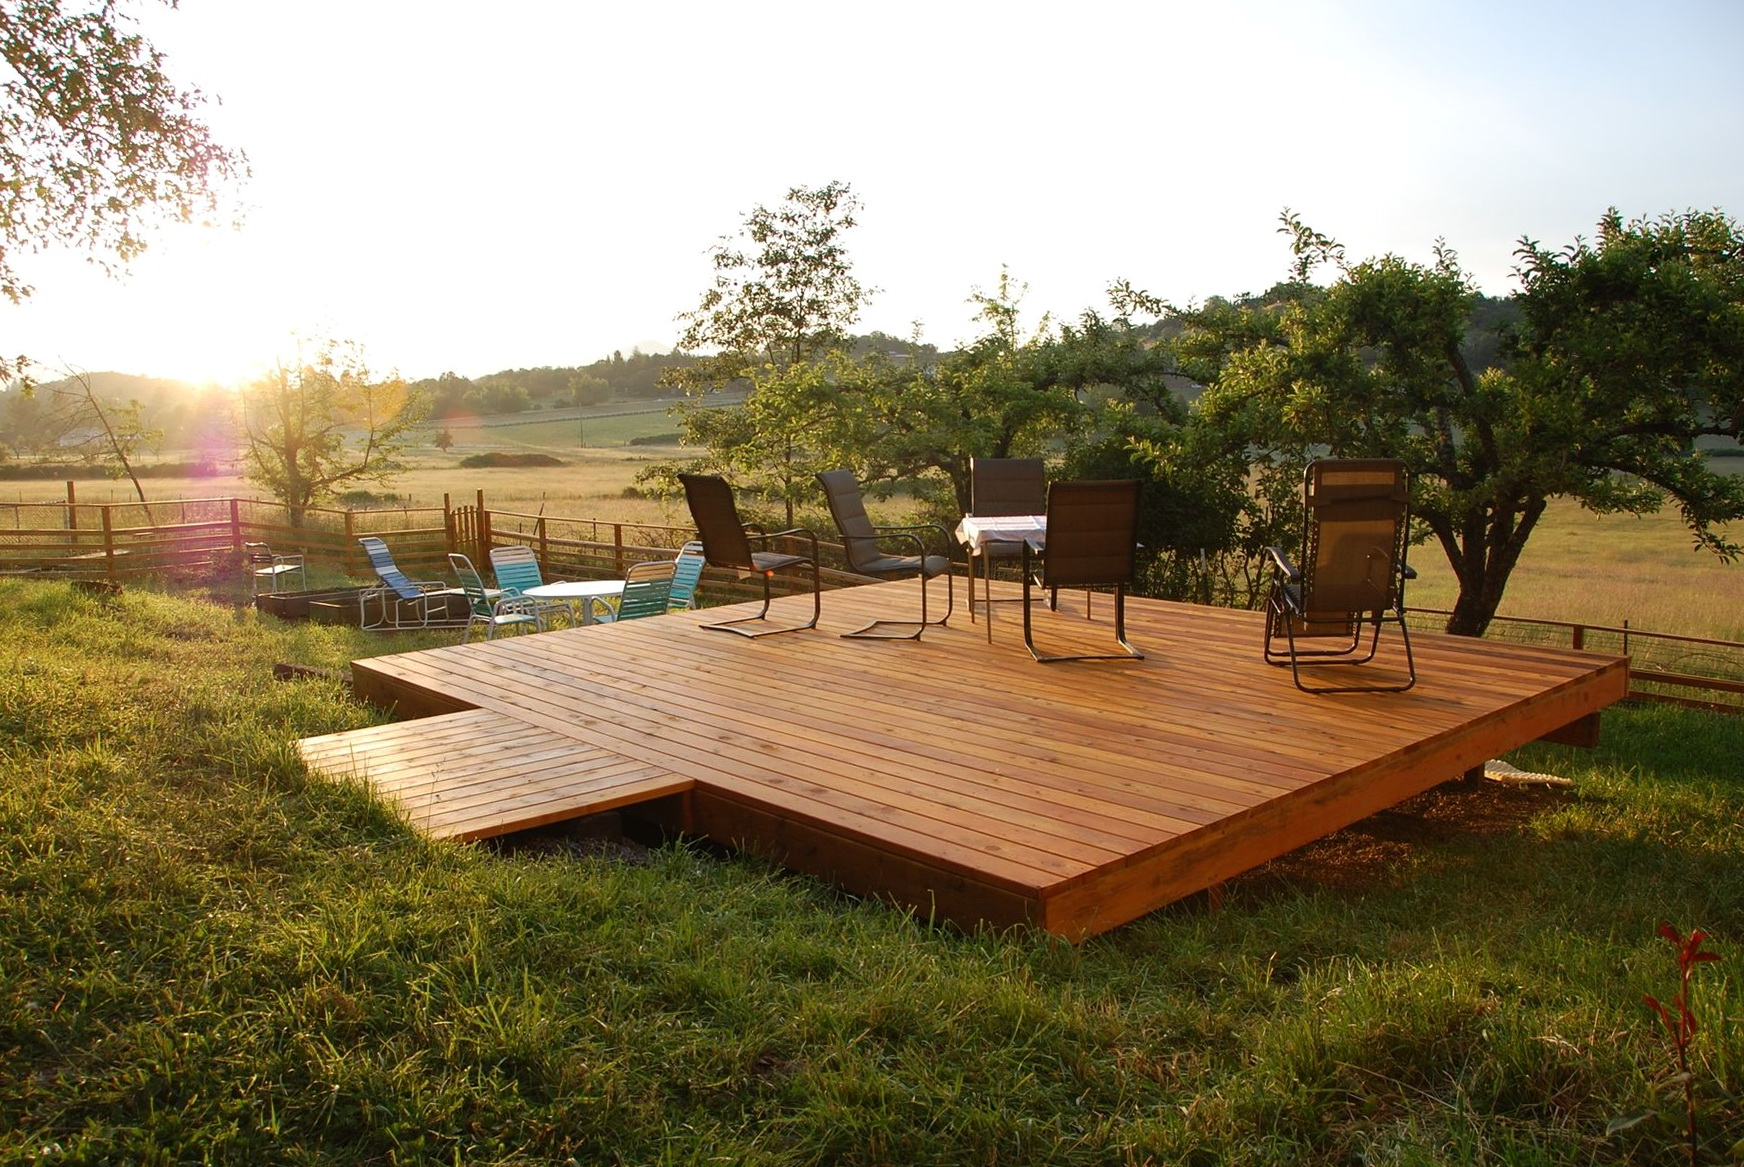 This deck set on the grassland features a modern set of seats overlooking the grassland and trees spreading to a very wide distance.